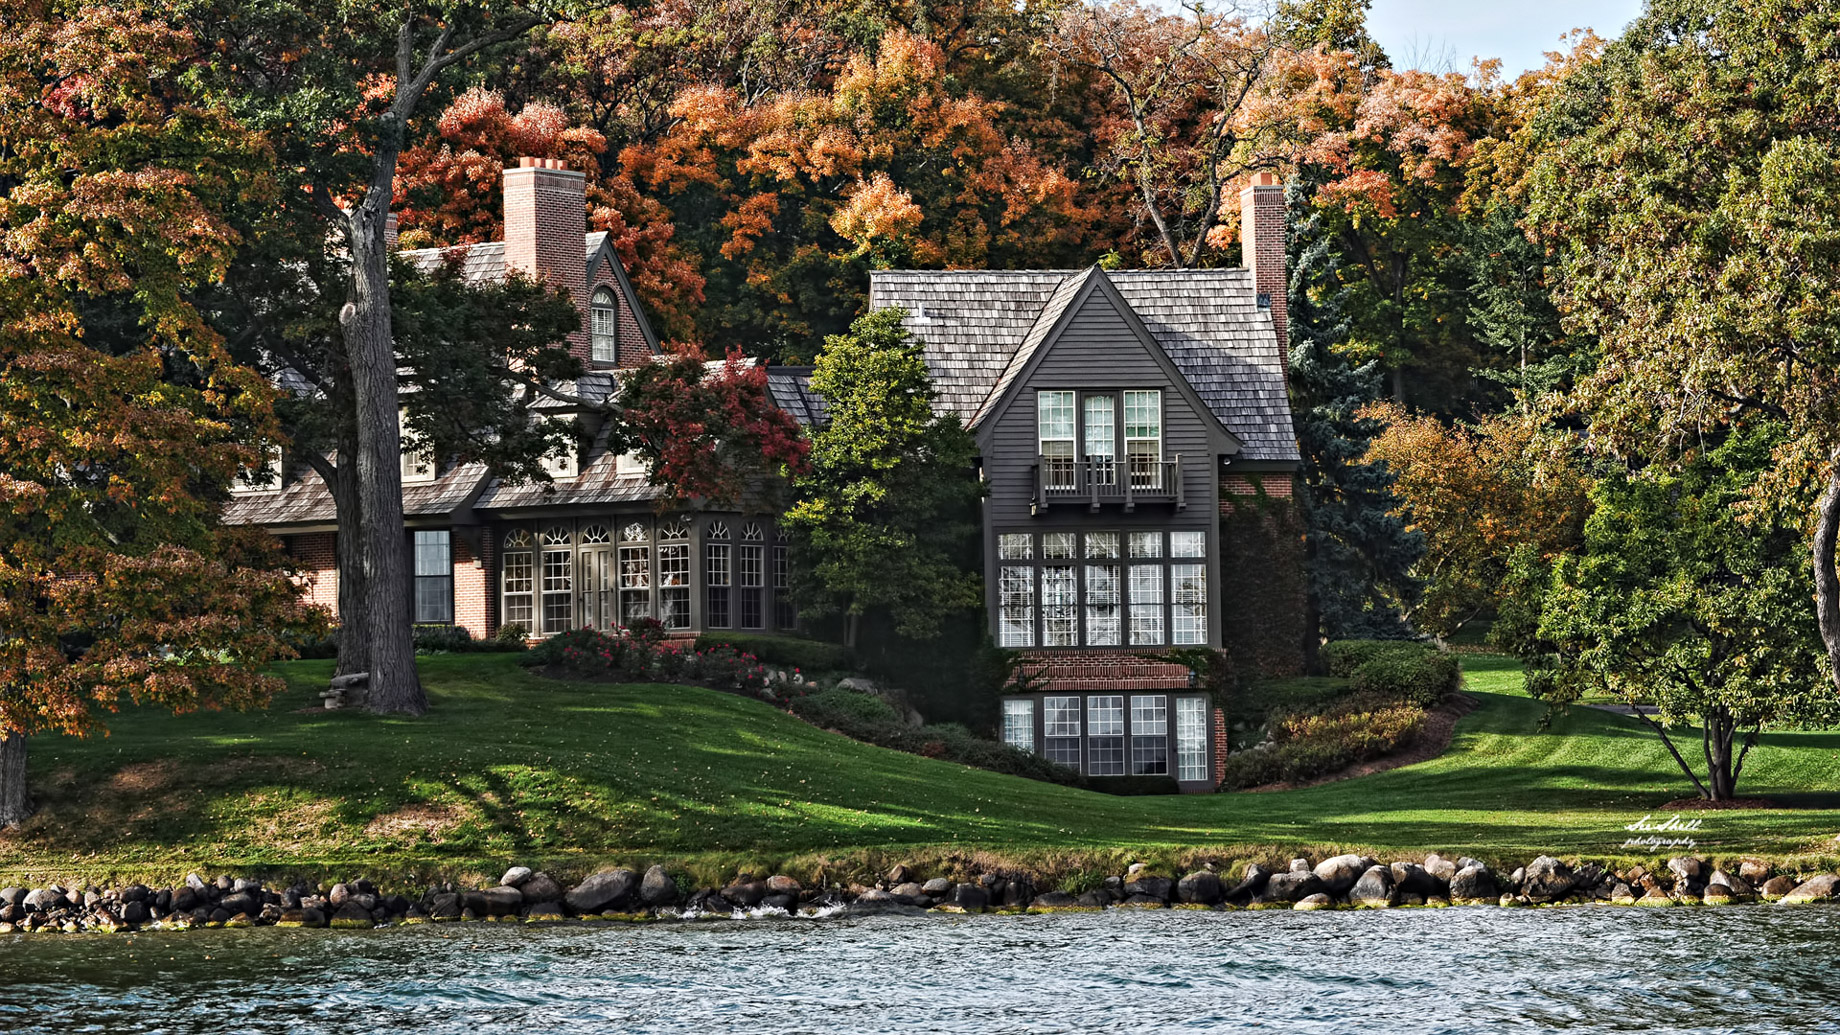 Wrigley Estate Lake Geneva - 5 of Wisconsin's Historically Significant Grand Mansions and Premier Luxury Estates